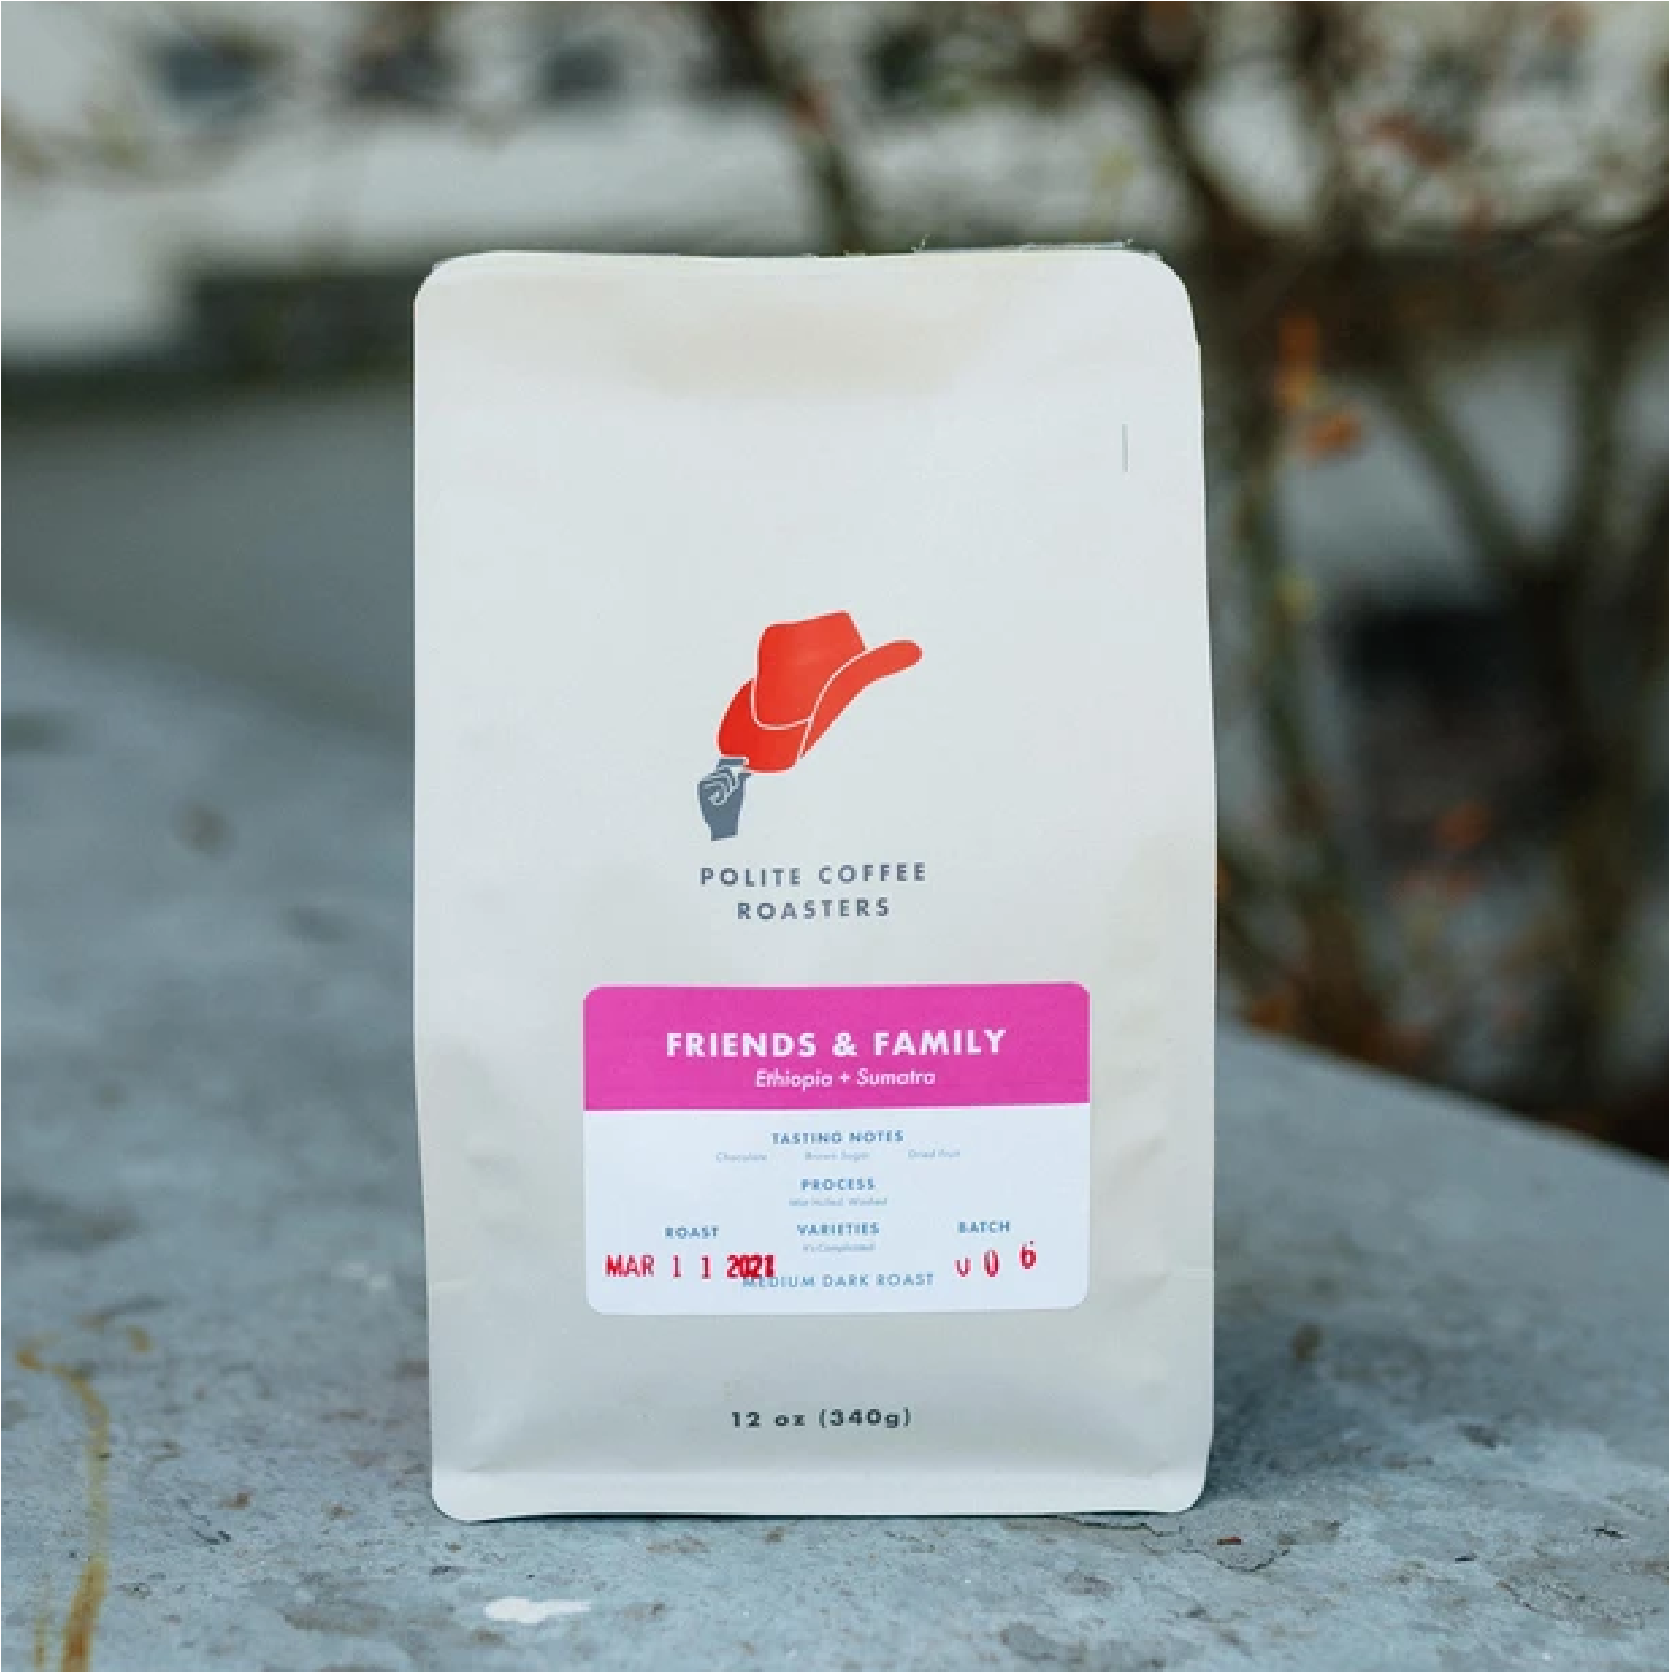 Friends & Family Ethopia + Sumatra from Polite Coffee